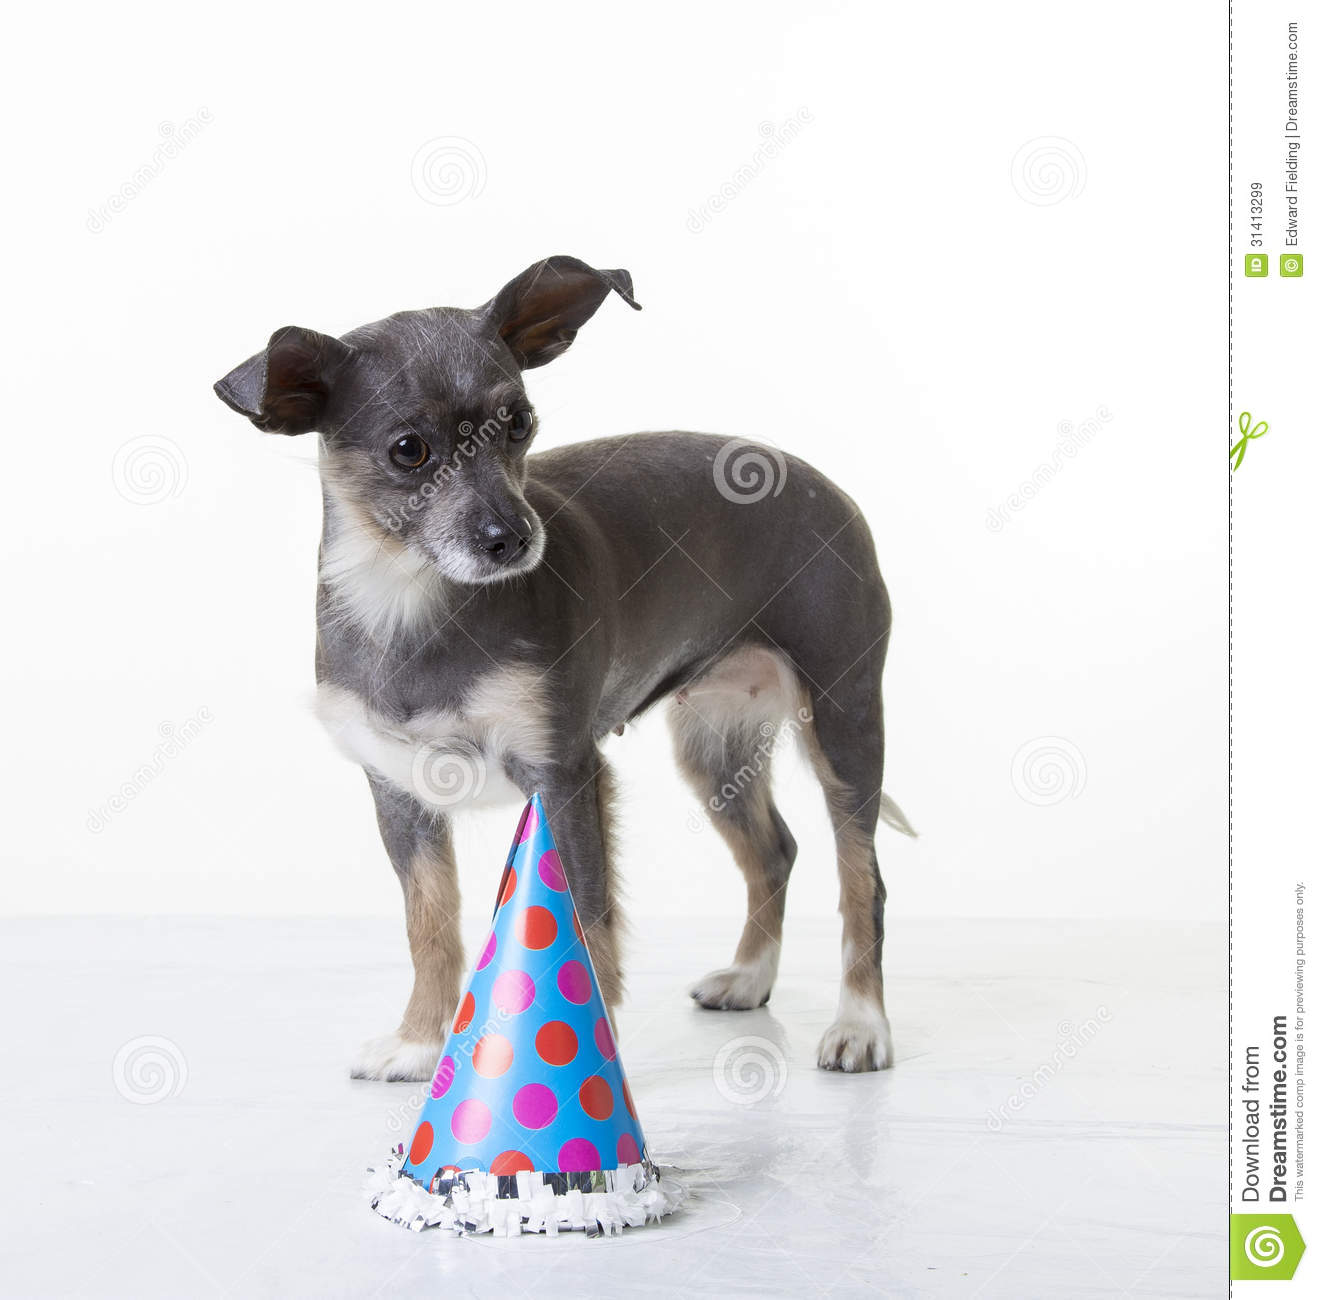 A Cute Small Little Hairless Puppy Dog Standing Near Happy Birthday Hat